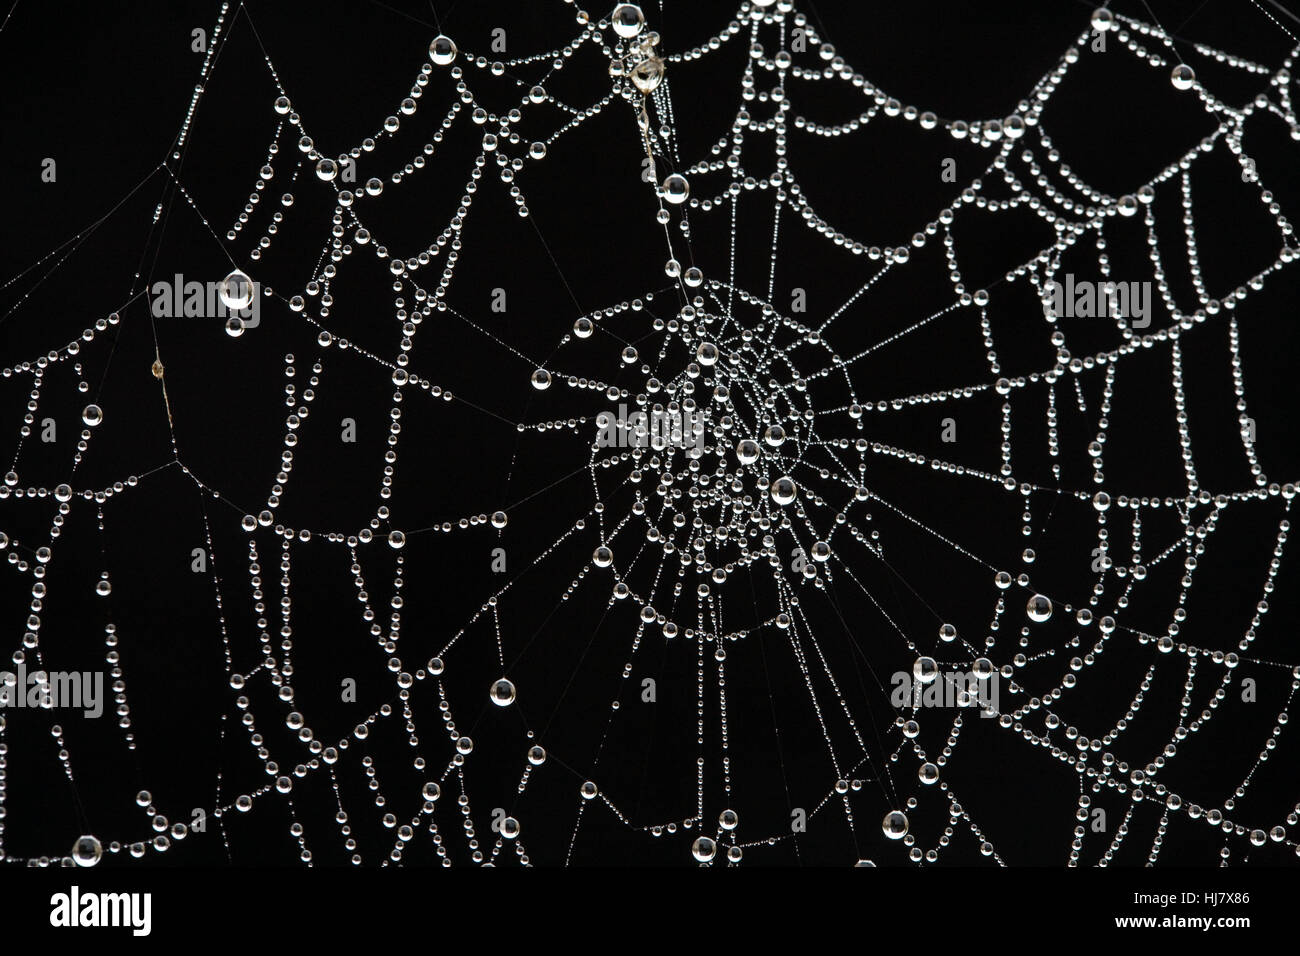 The web of a cross orbweaver spider, Araneus diadematus, covered with dew on a frosty october morning. - Stock Image